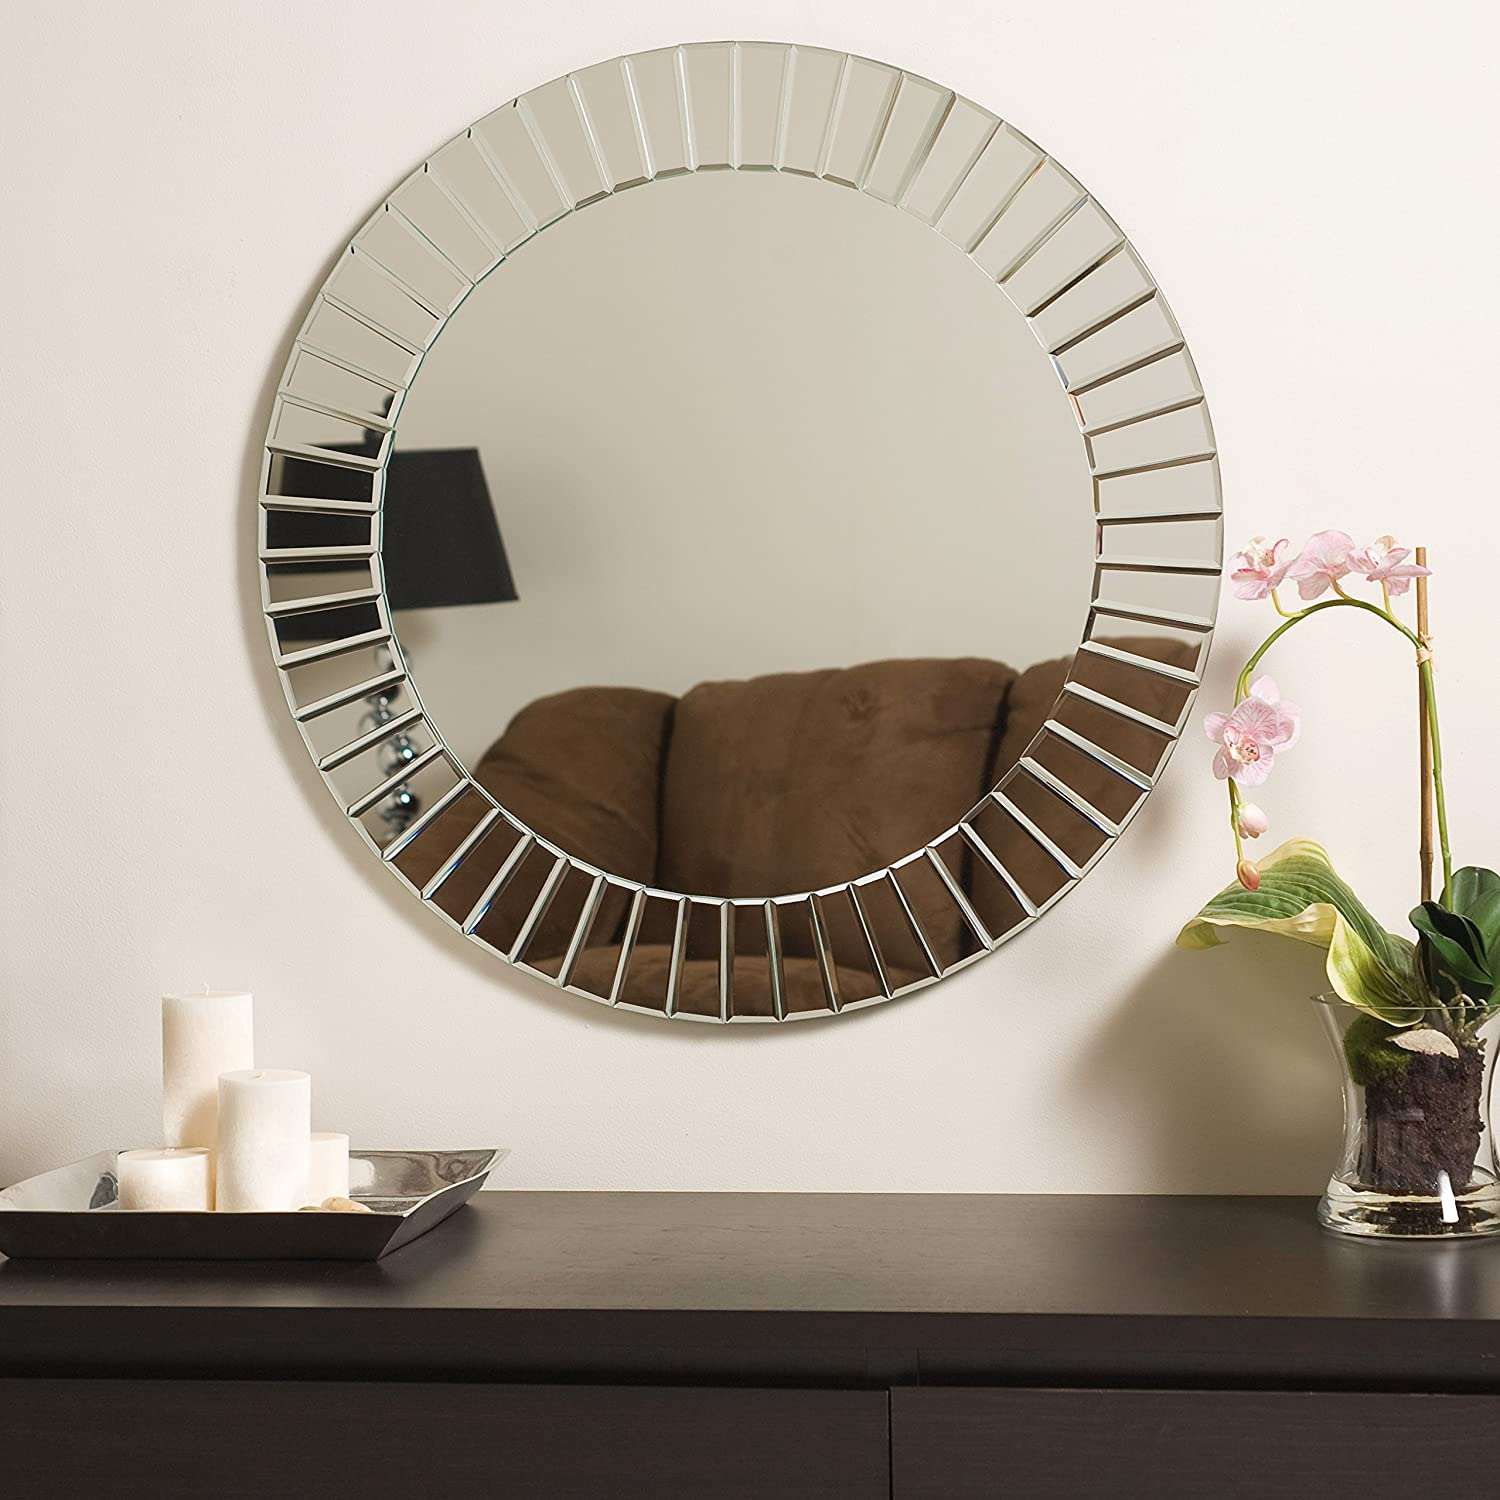 mirrors room brown beautiful sun shape decor living like in for round decorative art